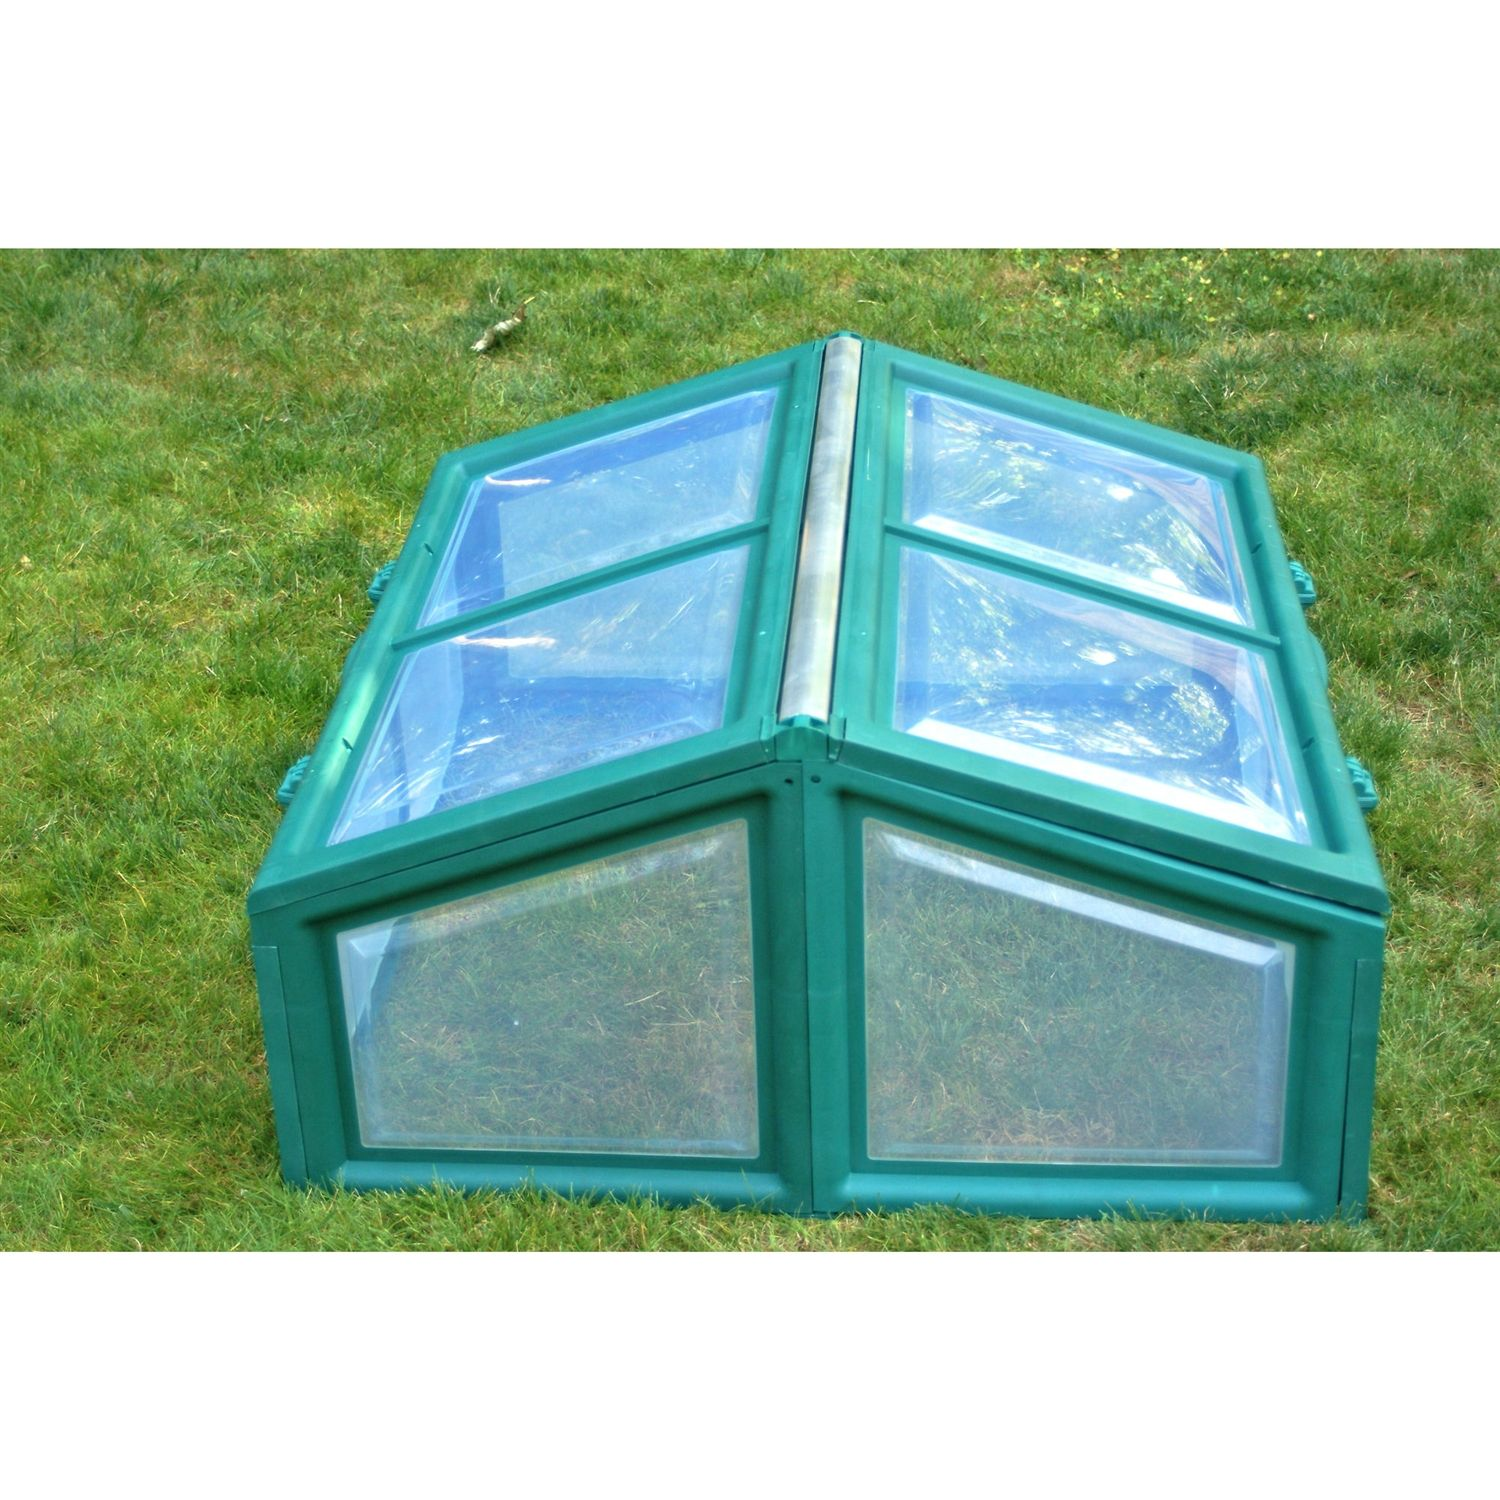 Polycarbonate Cold Frame Mini Greenhouse - Easy to Assemble ...